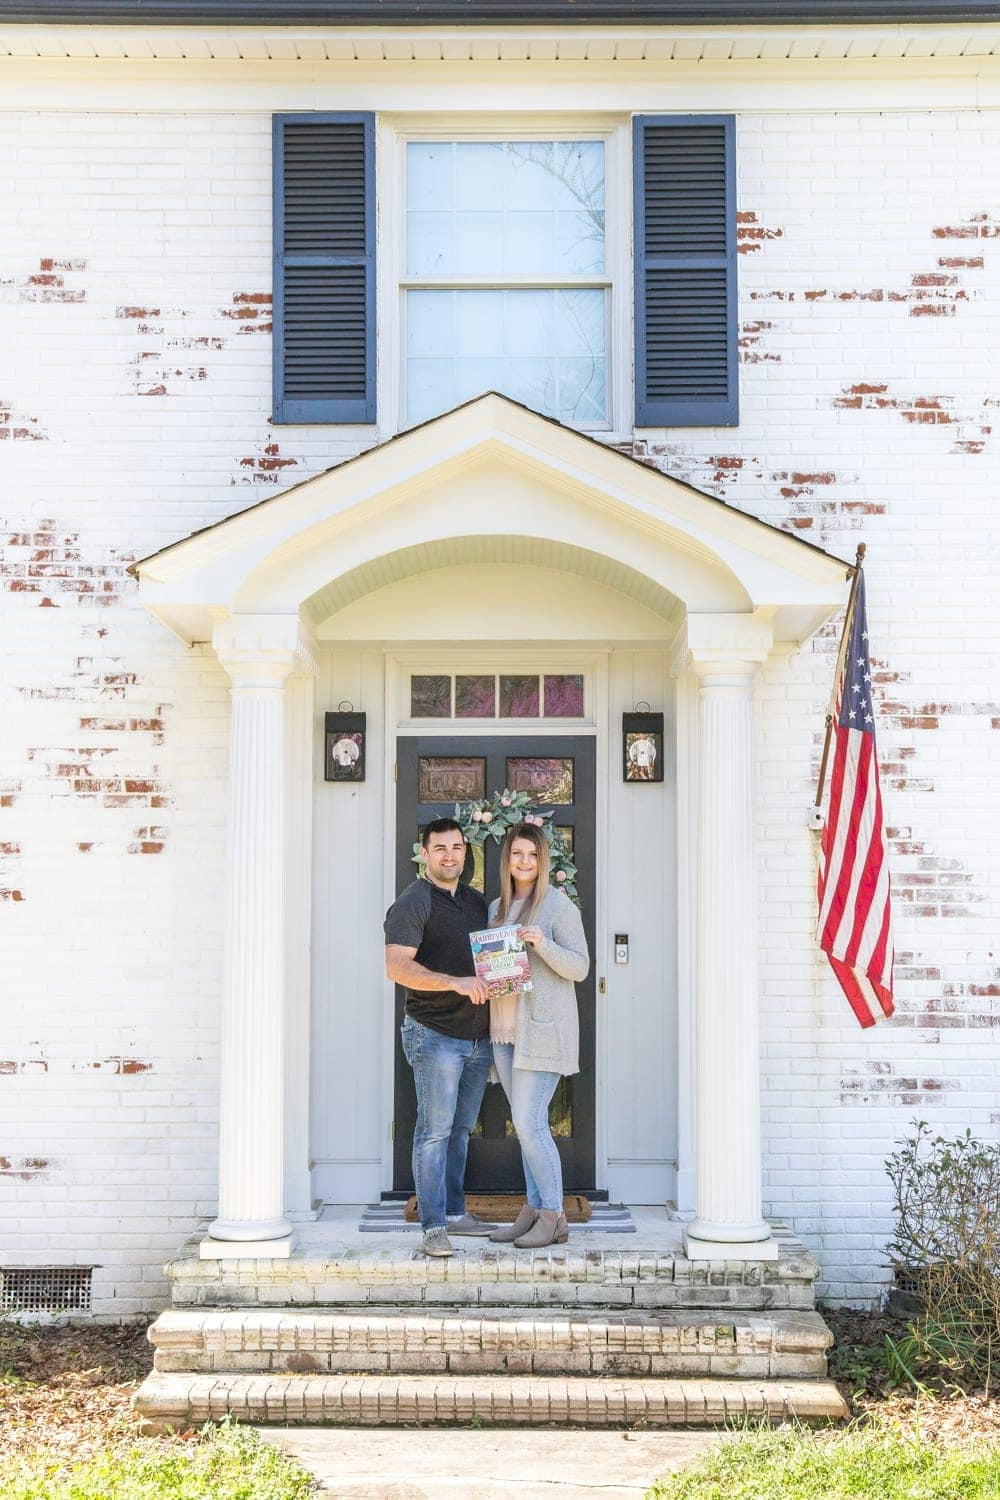 FAQs About Our Limewashed Brick | All of our frequently asked questions about our limewashed brick concerning neighbors' opinions, trends, DIY-ability, and why we chose it over paint. #limewash #brickexterior #limewashedbrick #brickpaint #paintedbrick #exteriormakeover #curbappeal #brickhouse